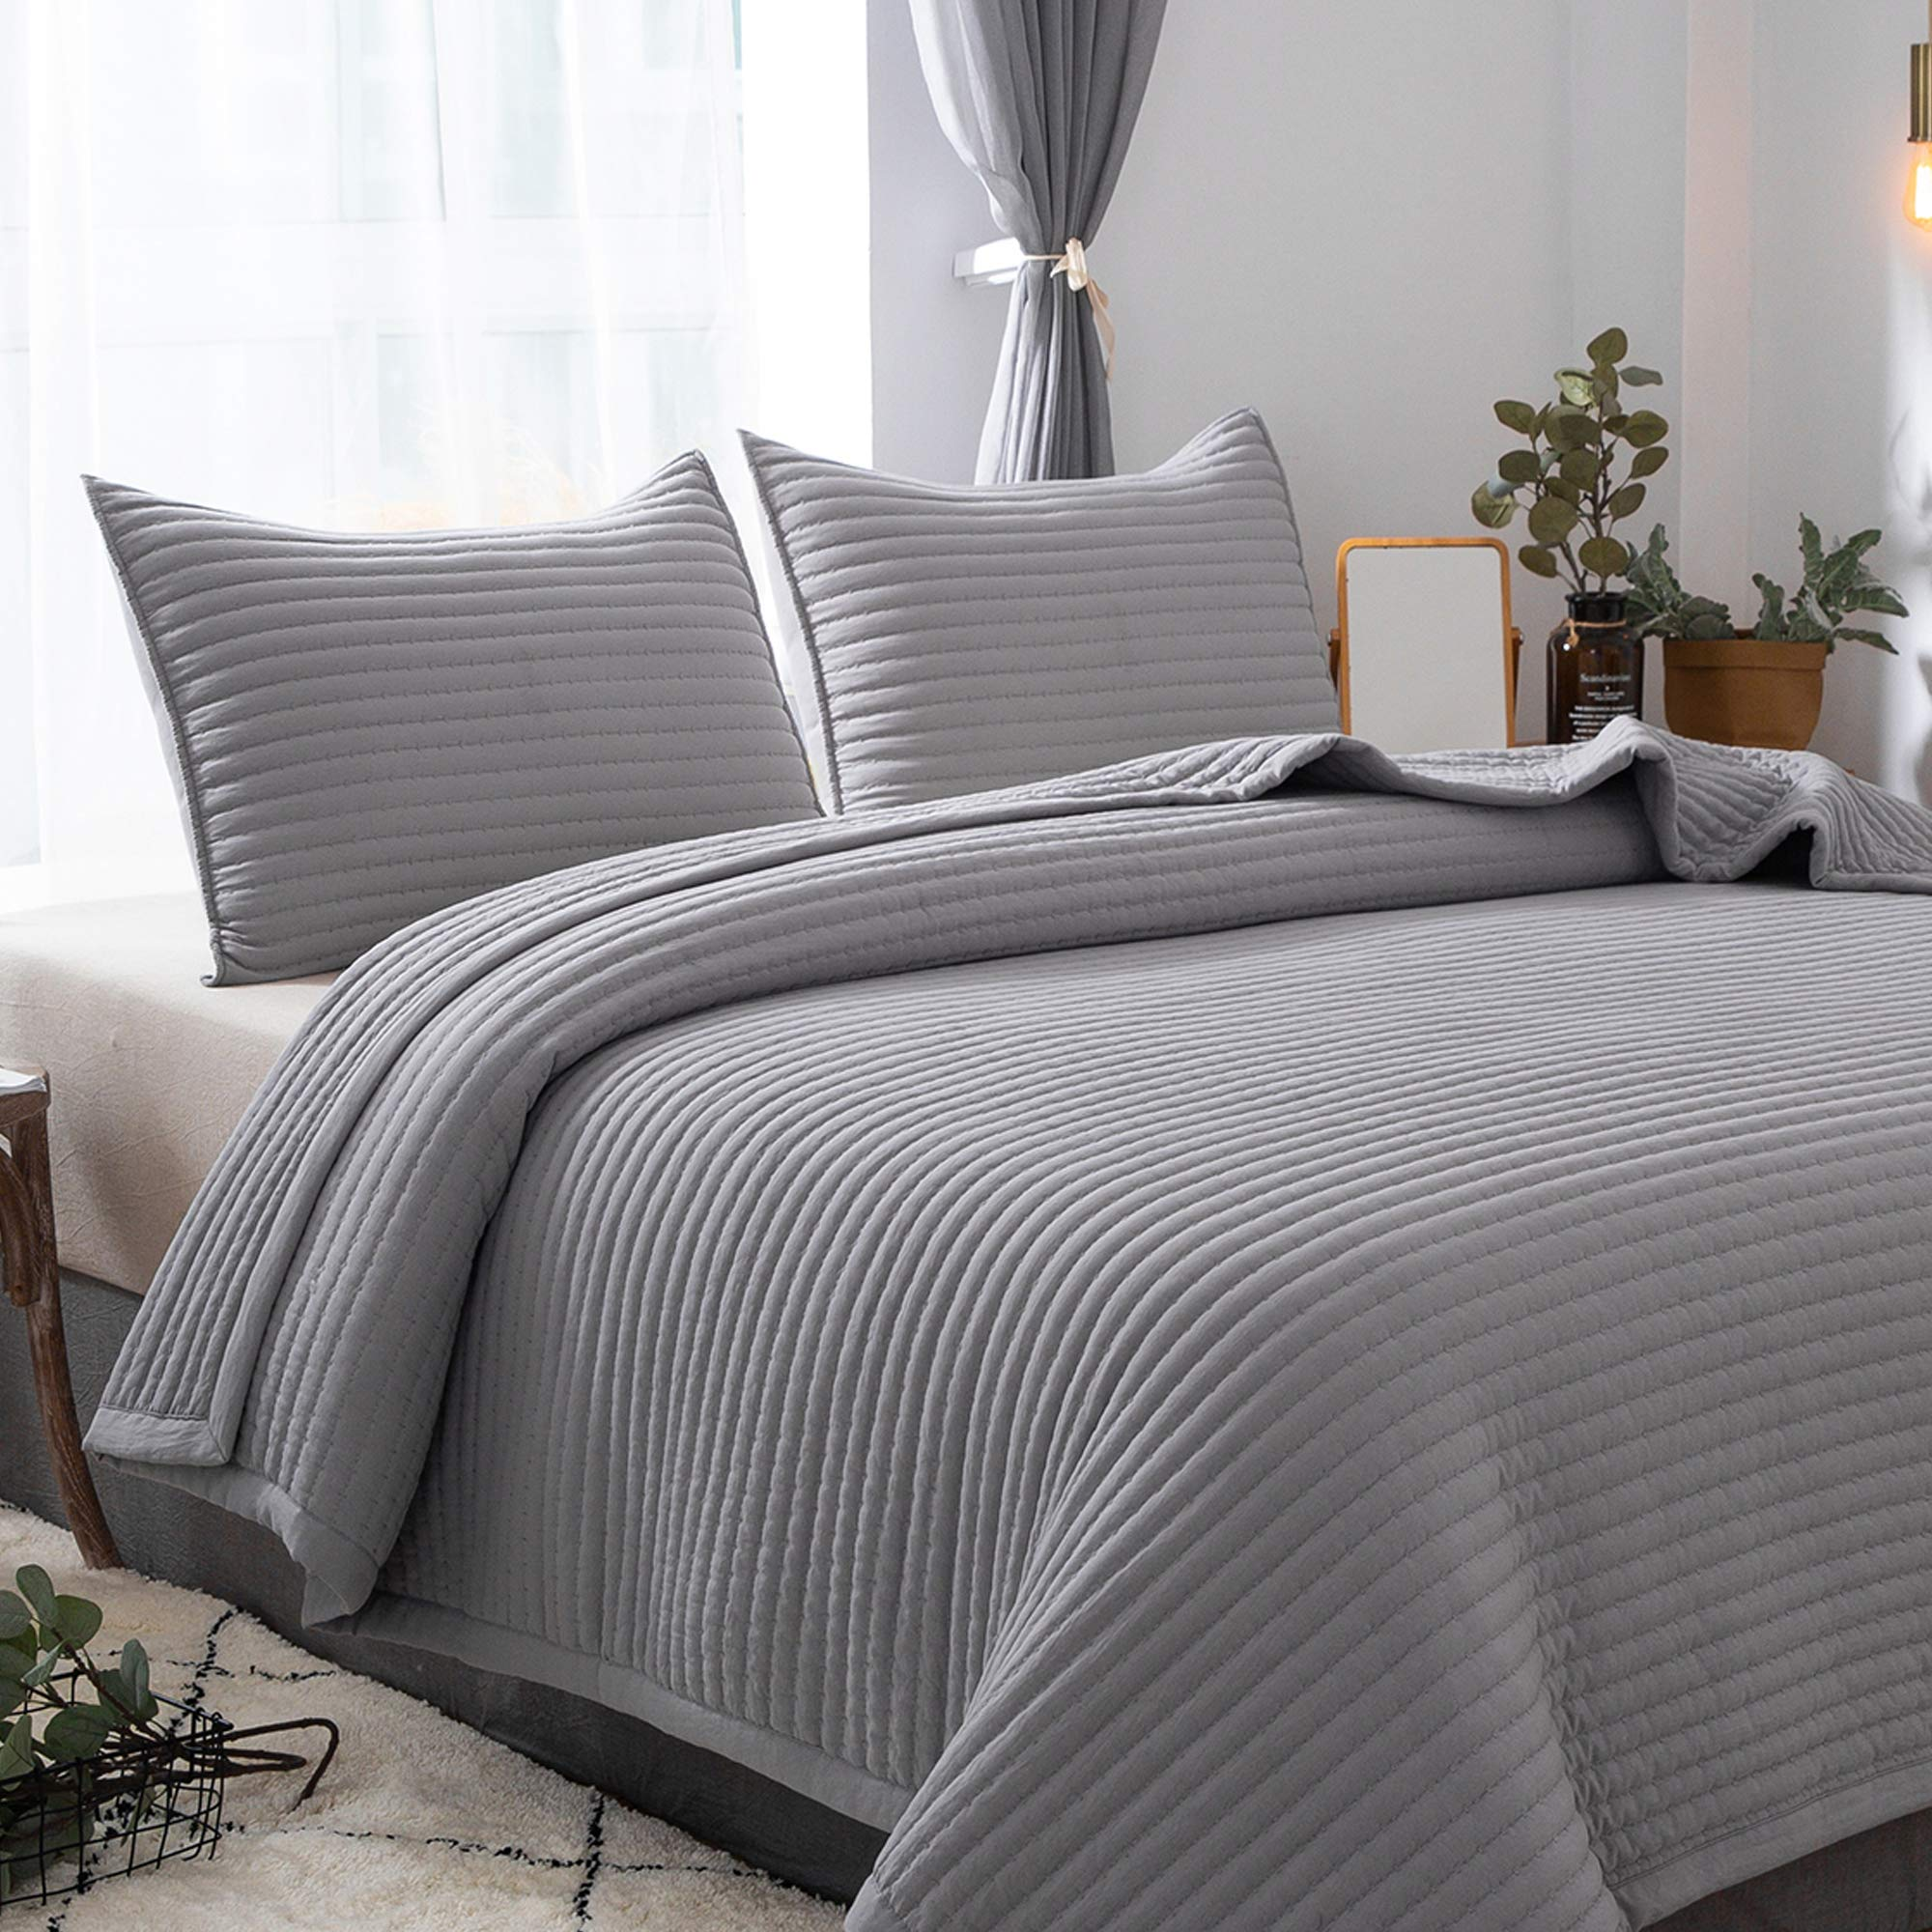 DAWNDIOR Lightweight Thin Quilted Comforter,Multipurpose for Quilt Bedspread Blanket with Luxurious Down Alternative Filling,Super Soft Fabric and Neoclassical Solid Design with 2 Shams